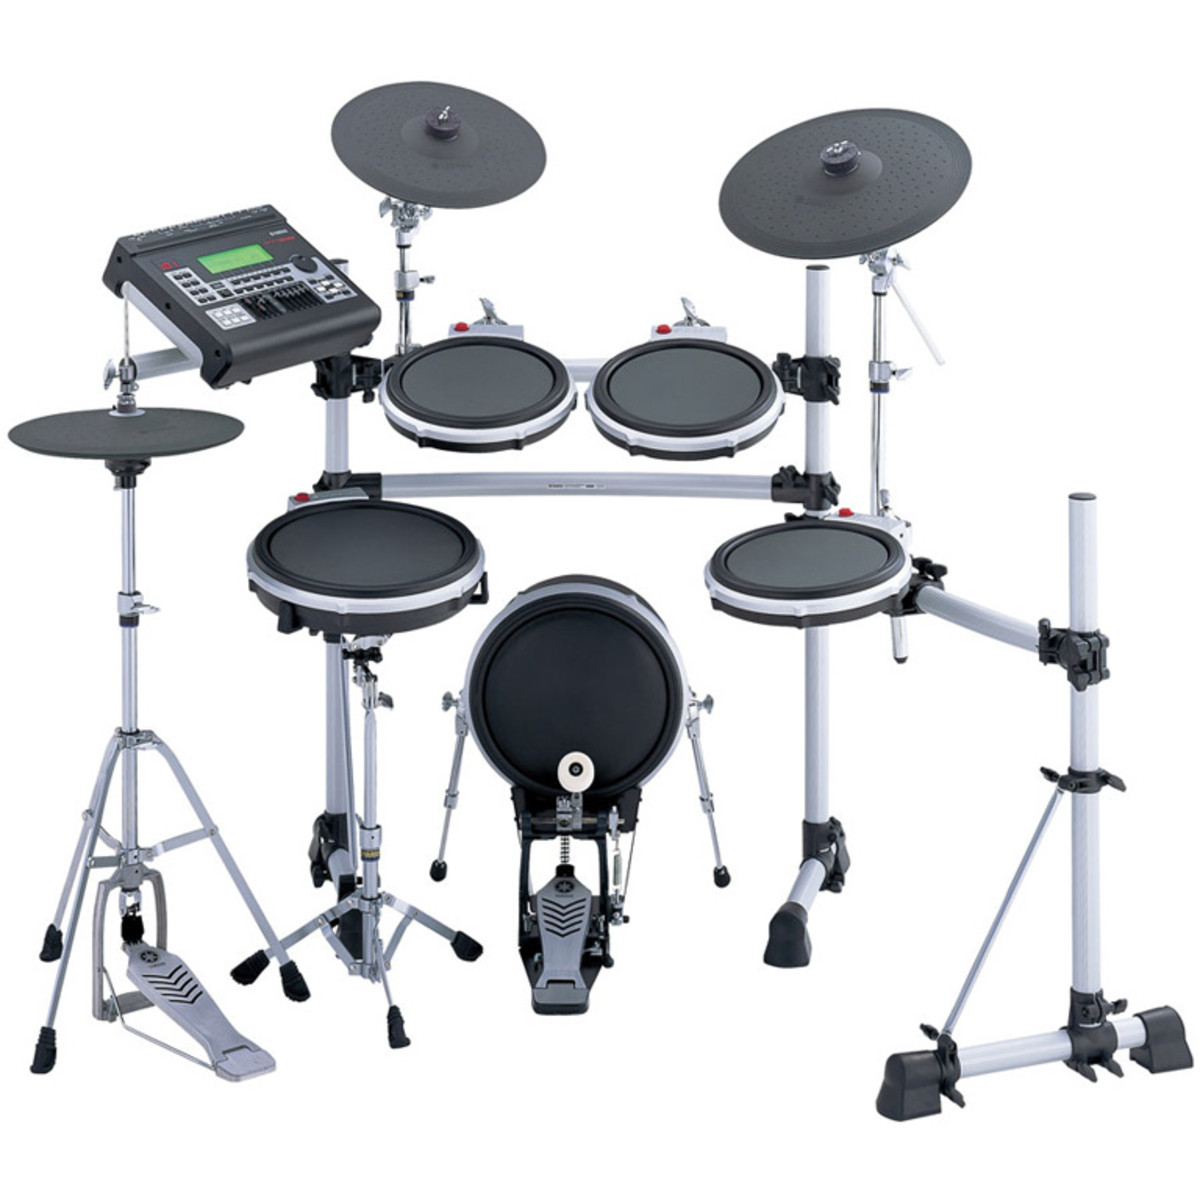 discontinued yamaha dtxtreme iii standard drum kit at gear4music com rh gear4music at DTXtreme LLS DTXtreme III Kit